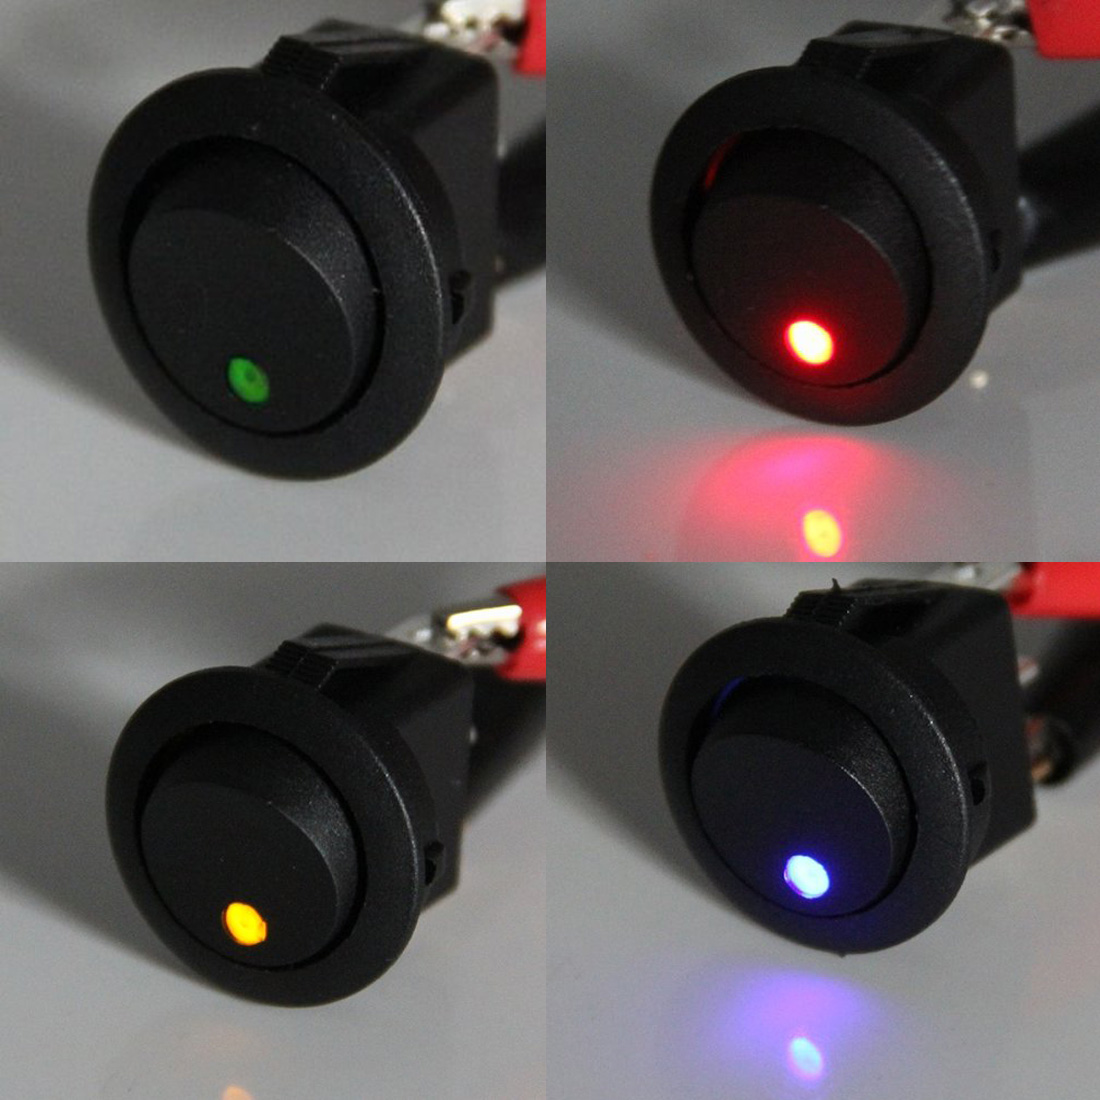 Marsnaska 12v Led Dot Light Car Boat Round Rocker On Off Spst Switch 12 Volt Illuminated Wiring 4 Colors 4pcs In Switches Relays From Automobiles Motorcycles